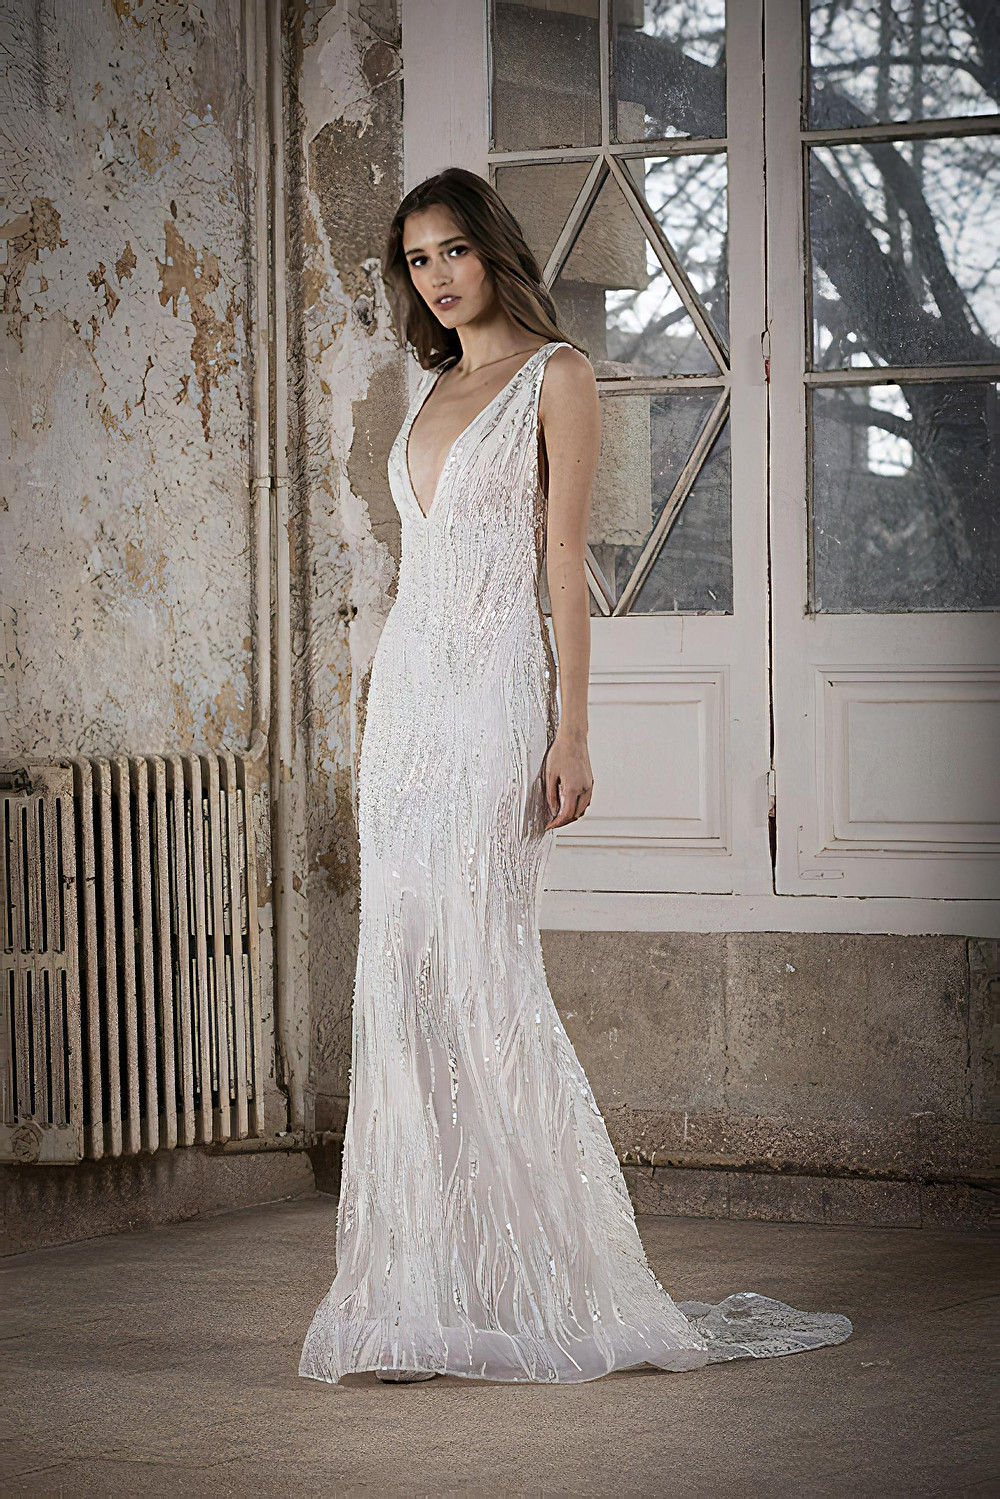 A fitted wedding gown featuring a plunging neckline and delicate embroidery